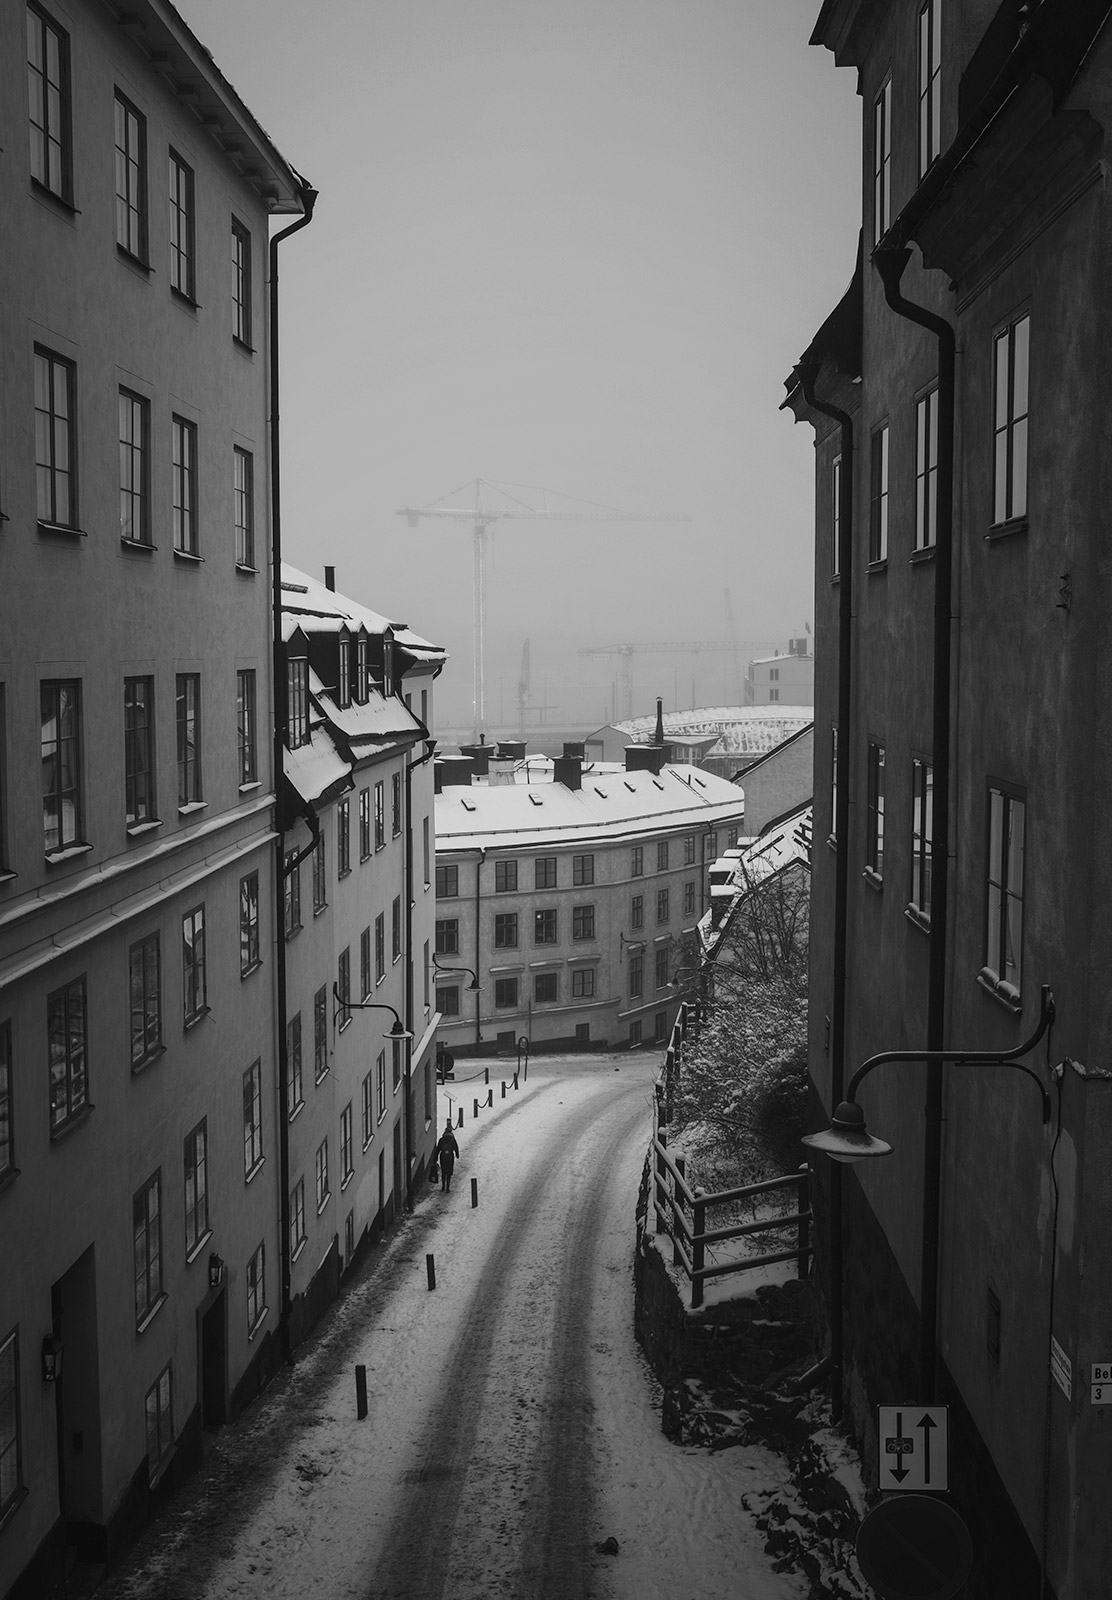 View down on street in the snow